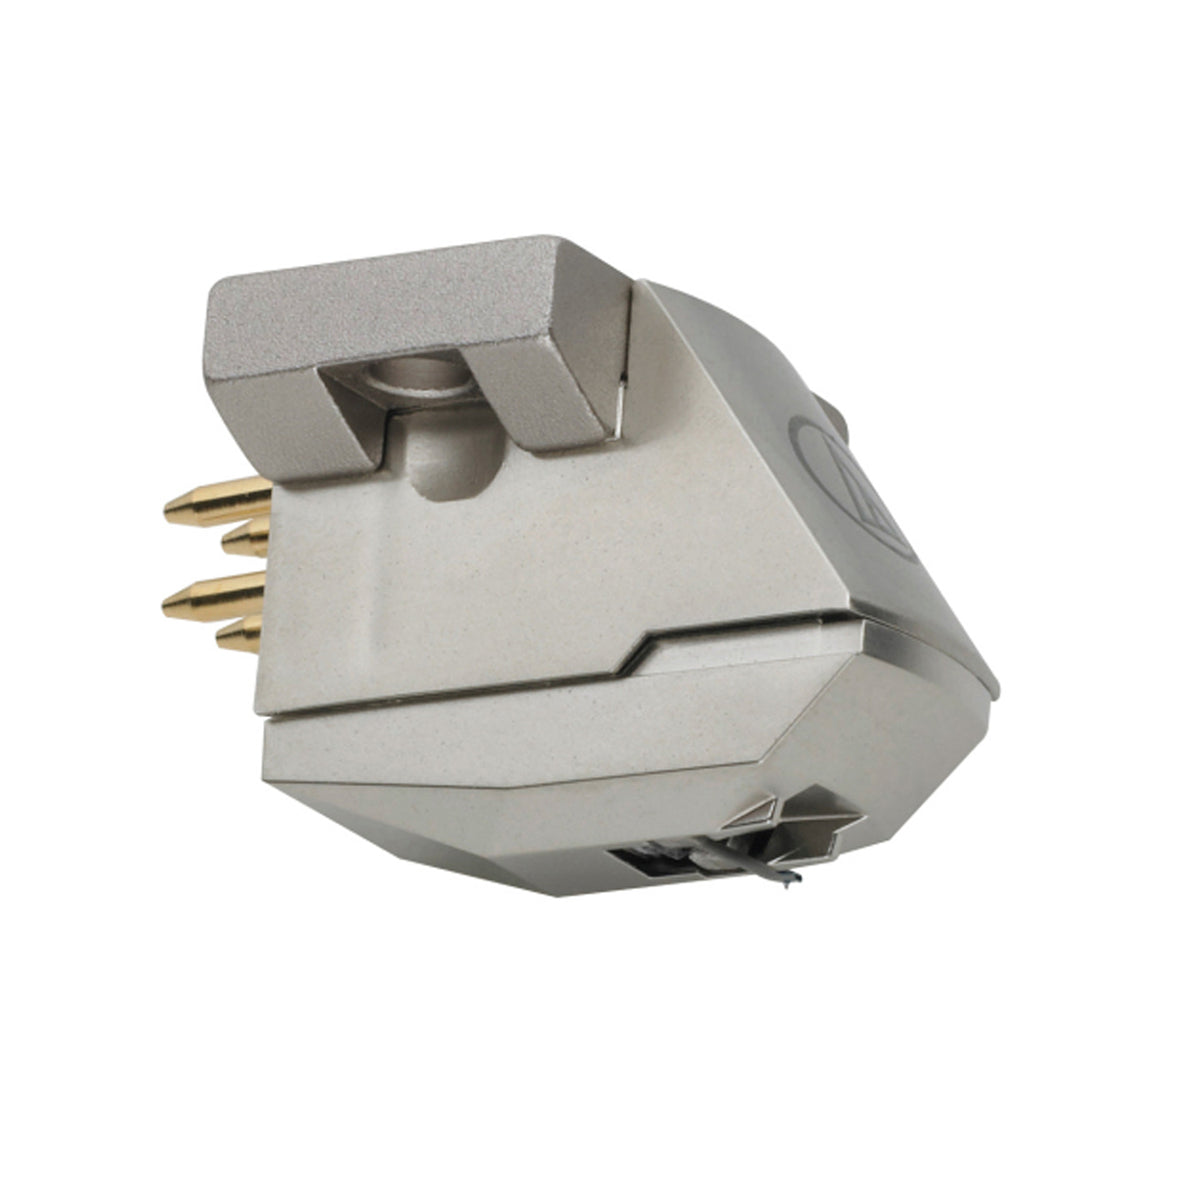 Audio-Technica: AT-F7 Moving Coil Cartridge